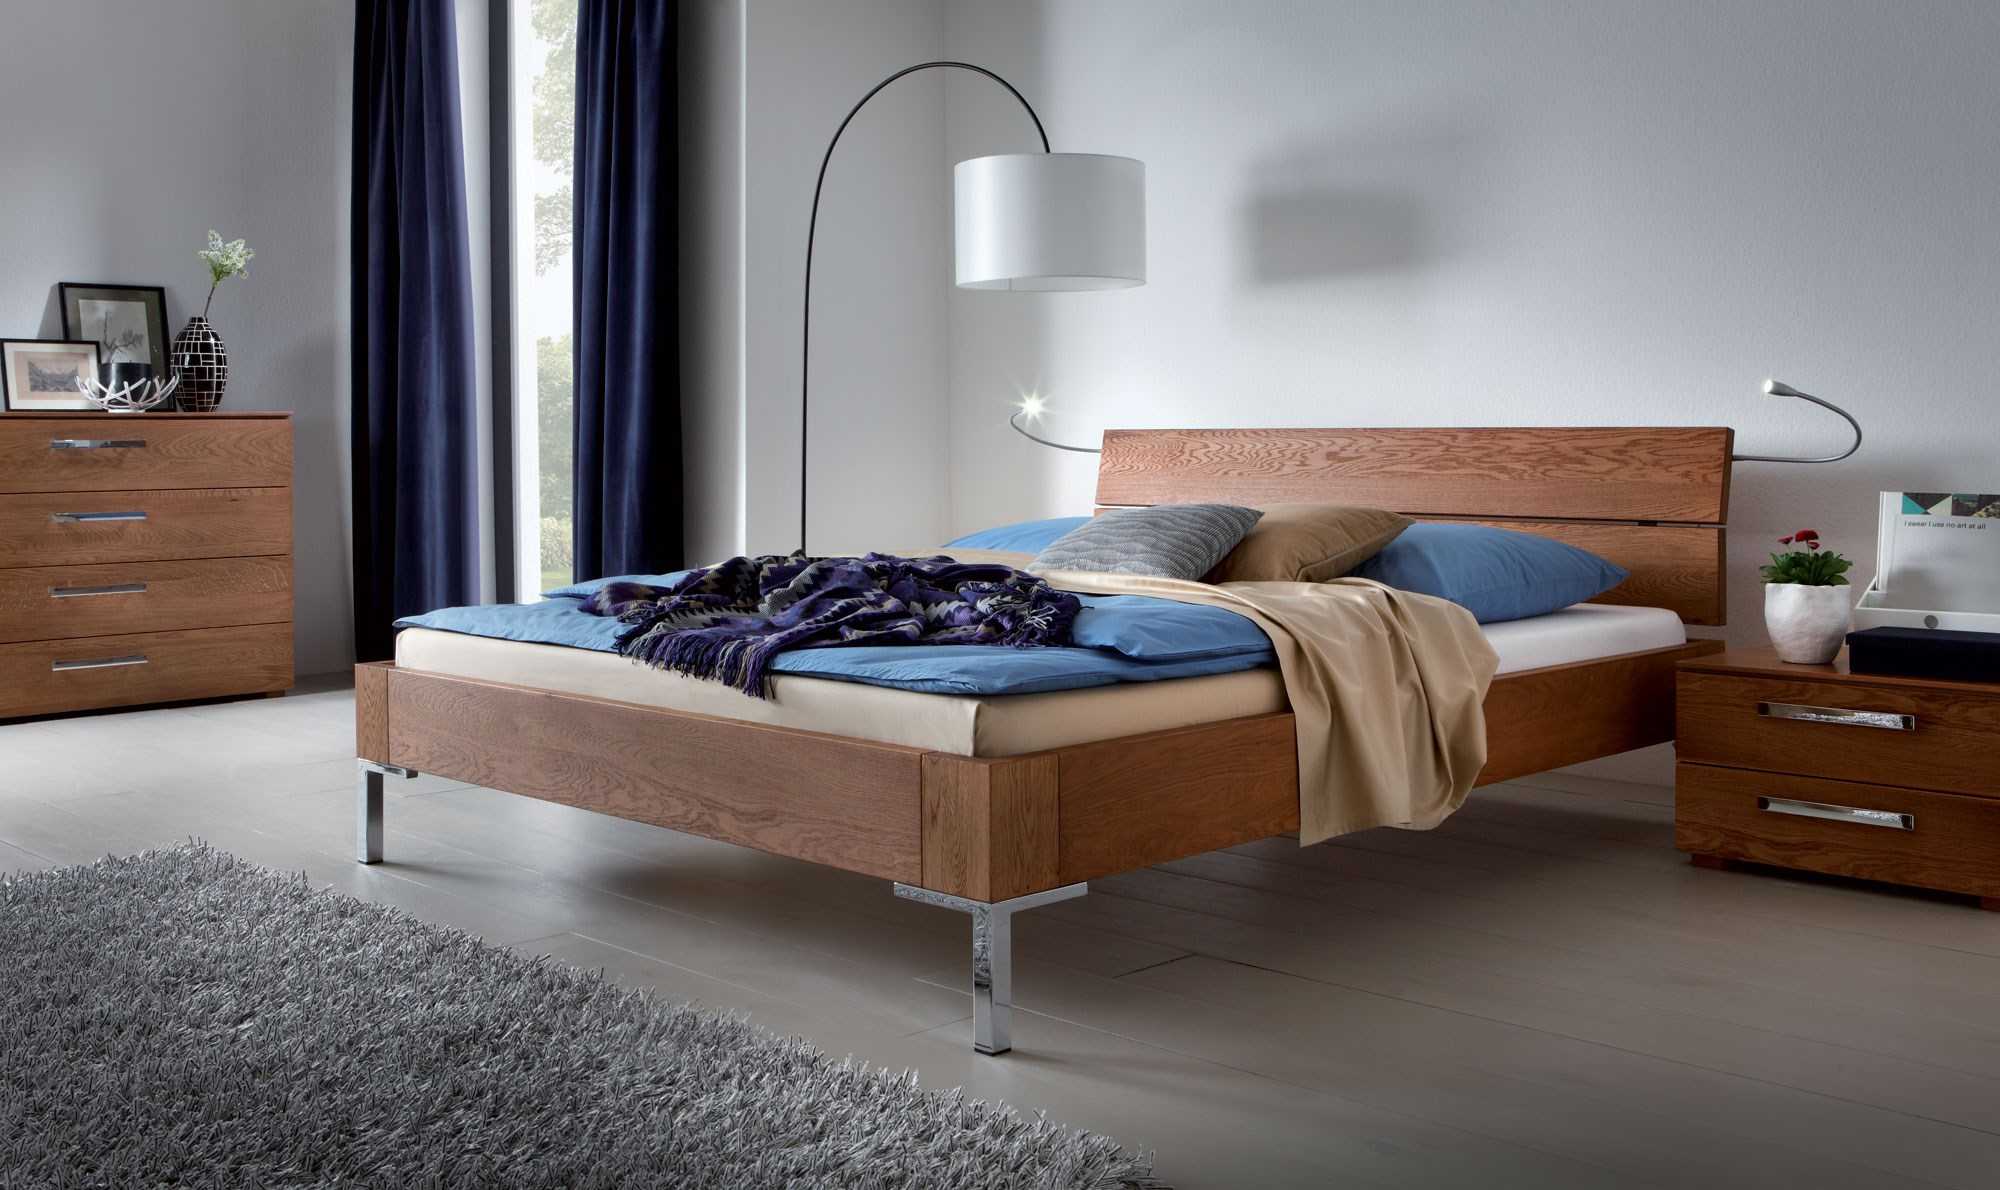 hasena oakline sina  avila contemporary oak solid wood bed  - natural oak oiled solid wooden bed